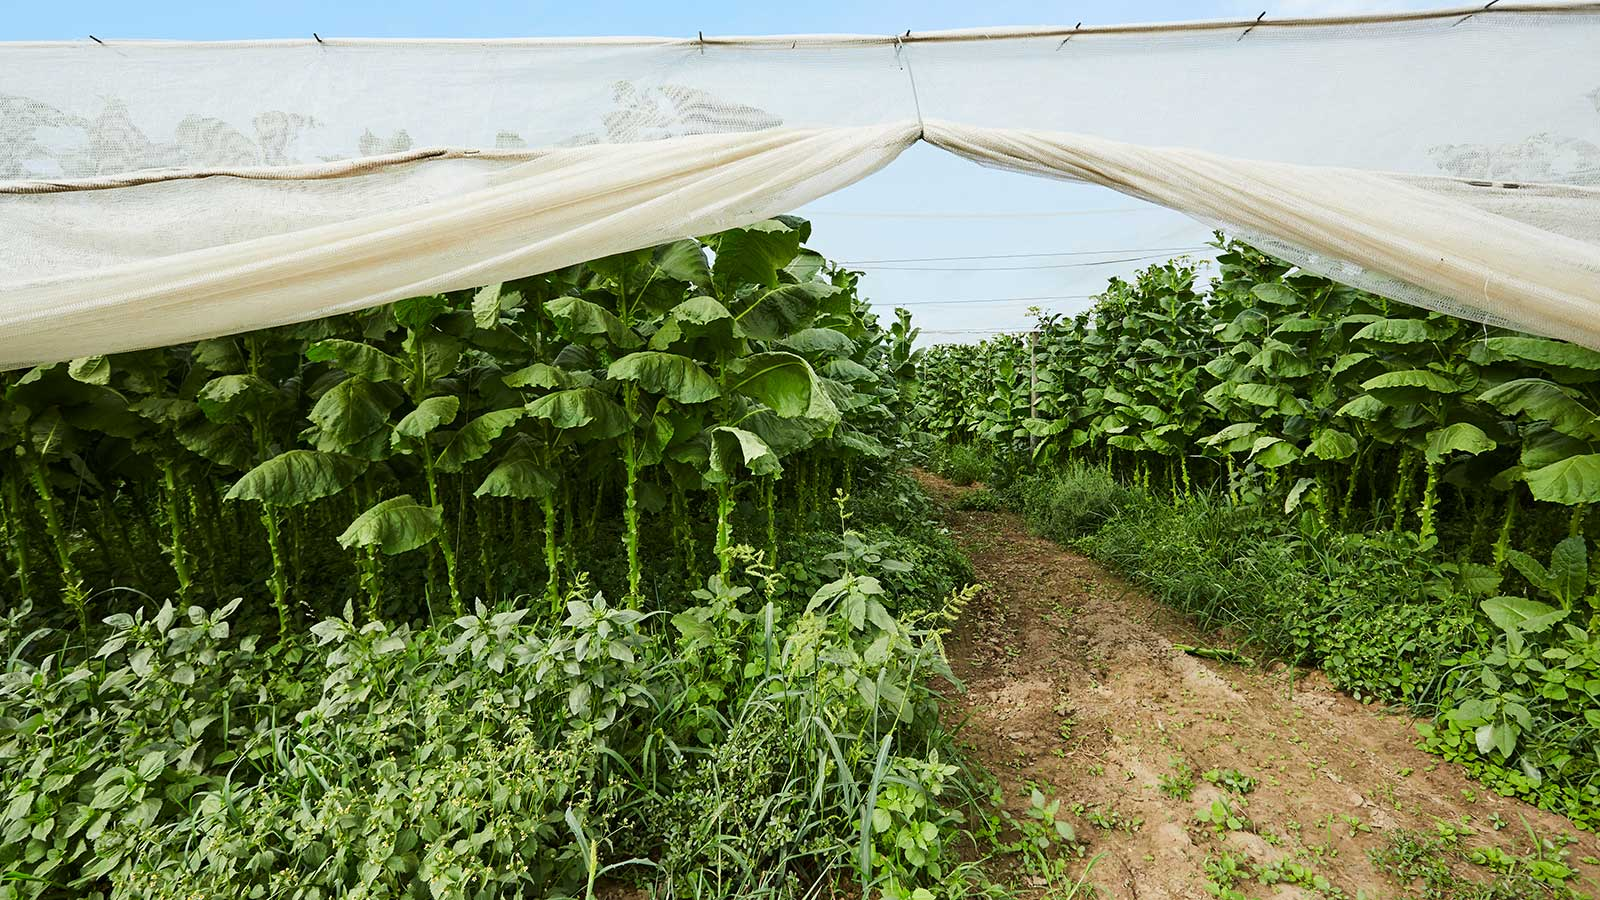 Connecticut Shade is grown under elaborate tents of screen-like netting made of cheesecloth that filter the sun, making for thinner, finer tobacco.